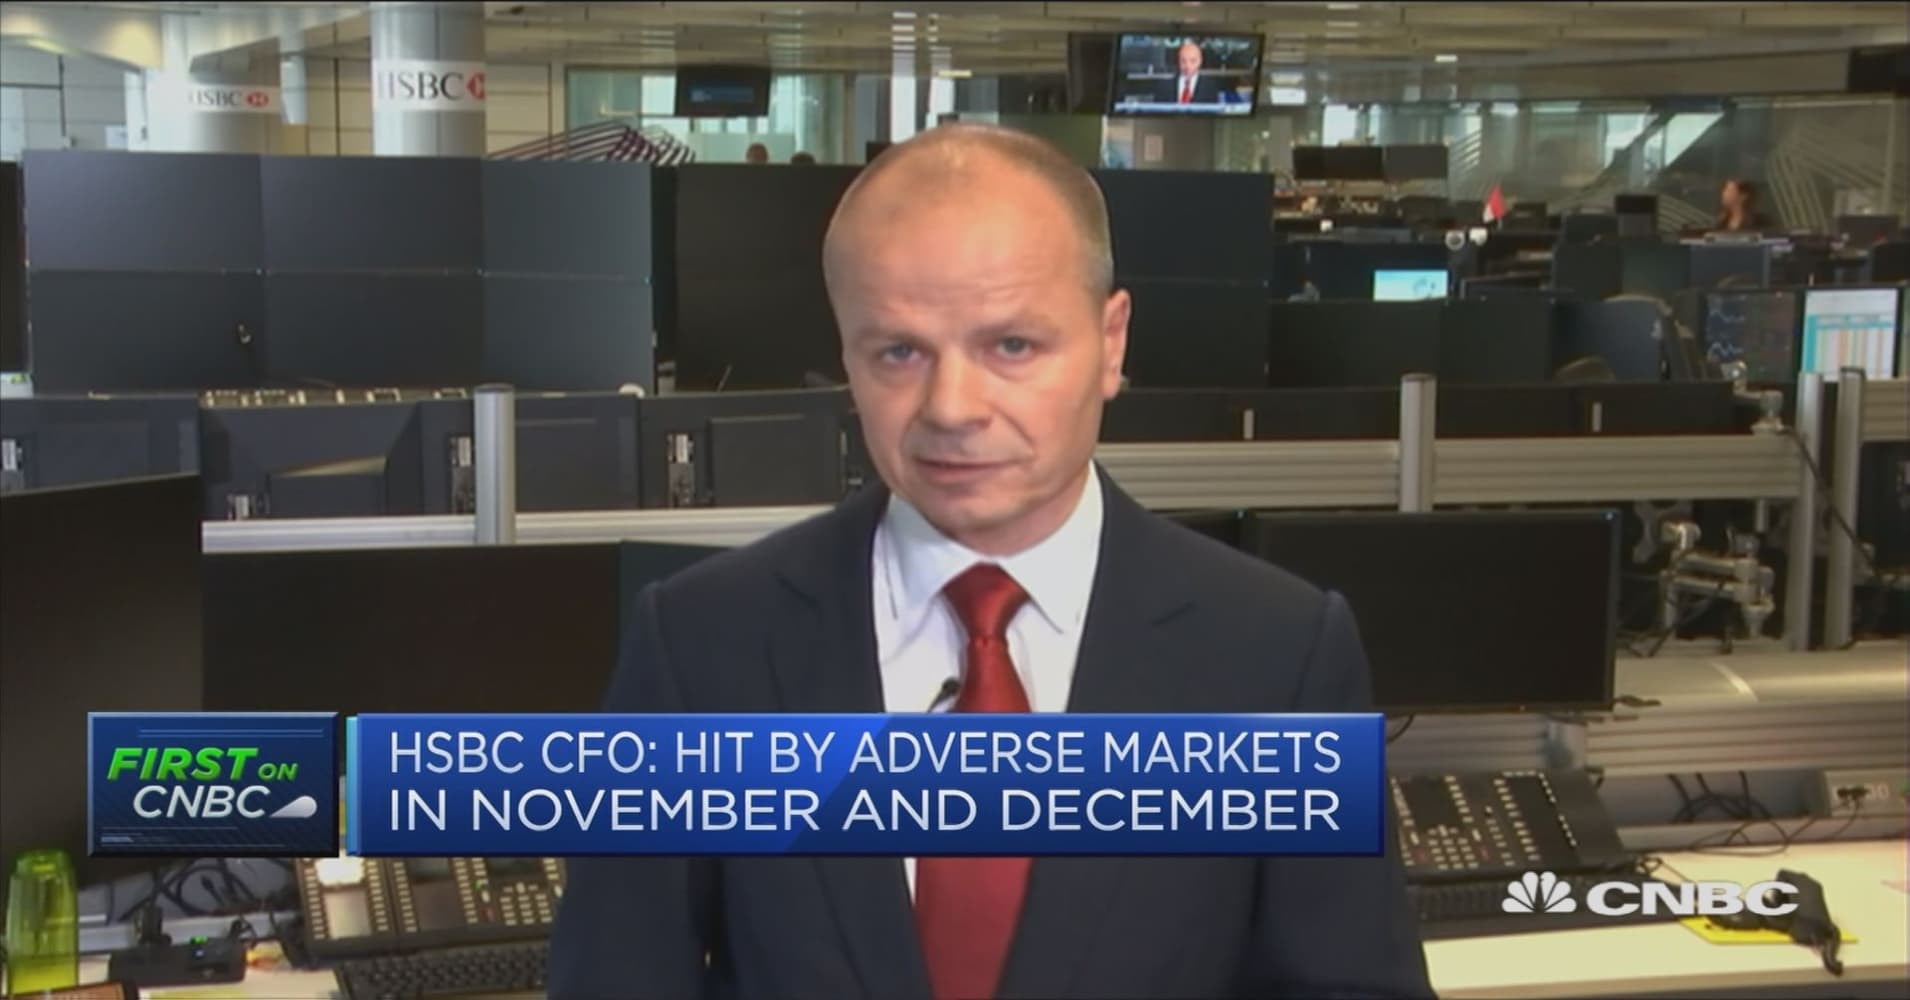 We are starting to be cautious on growth: HSBC